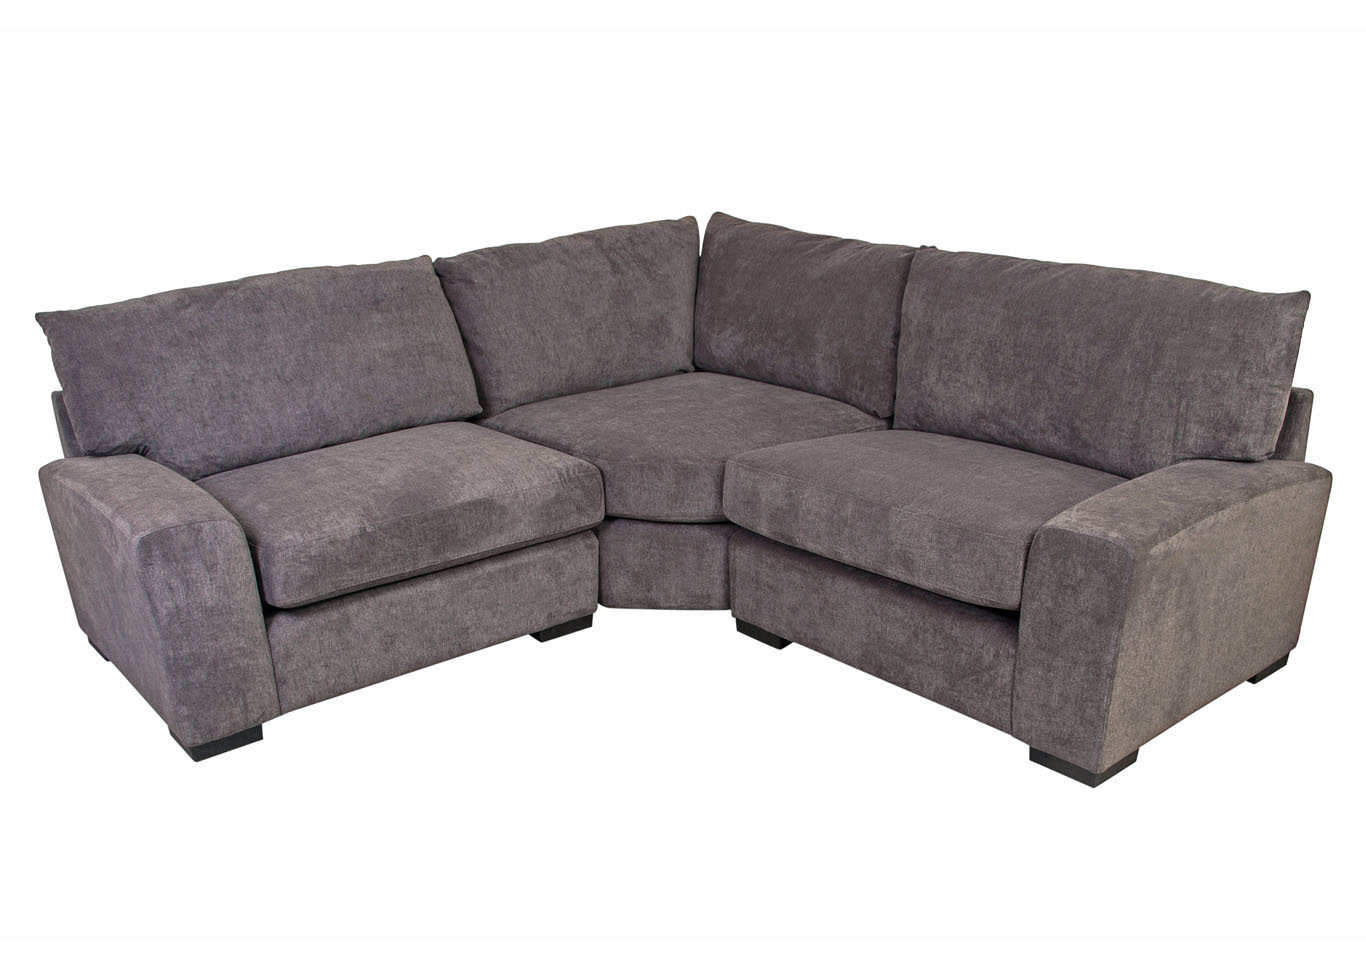 Clayton 3pc Modular Sectional,Instore